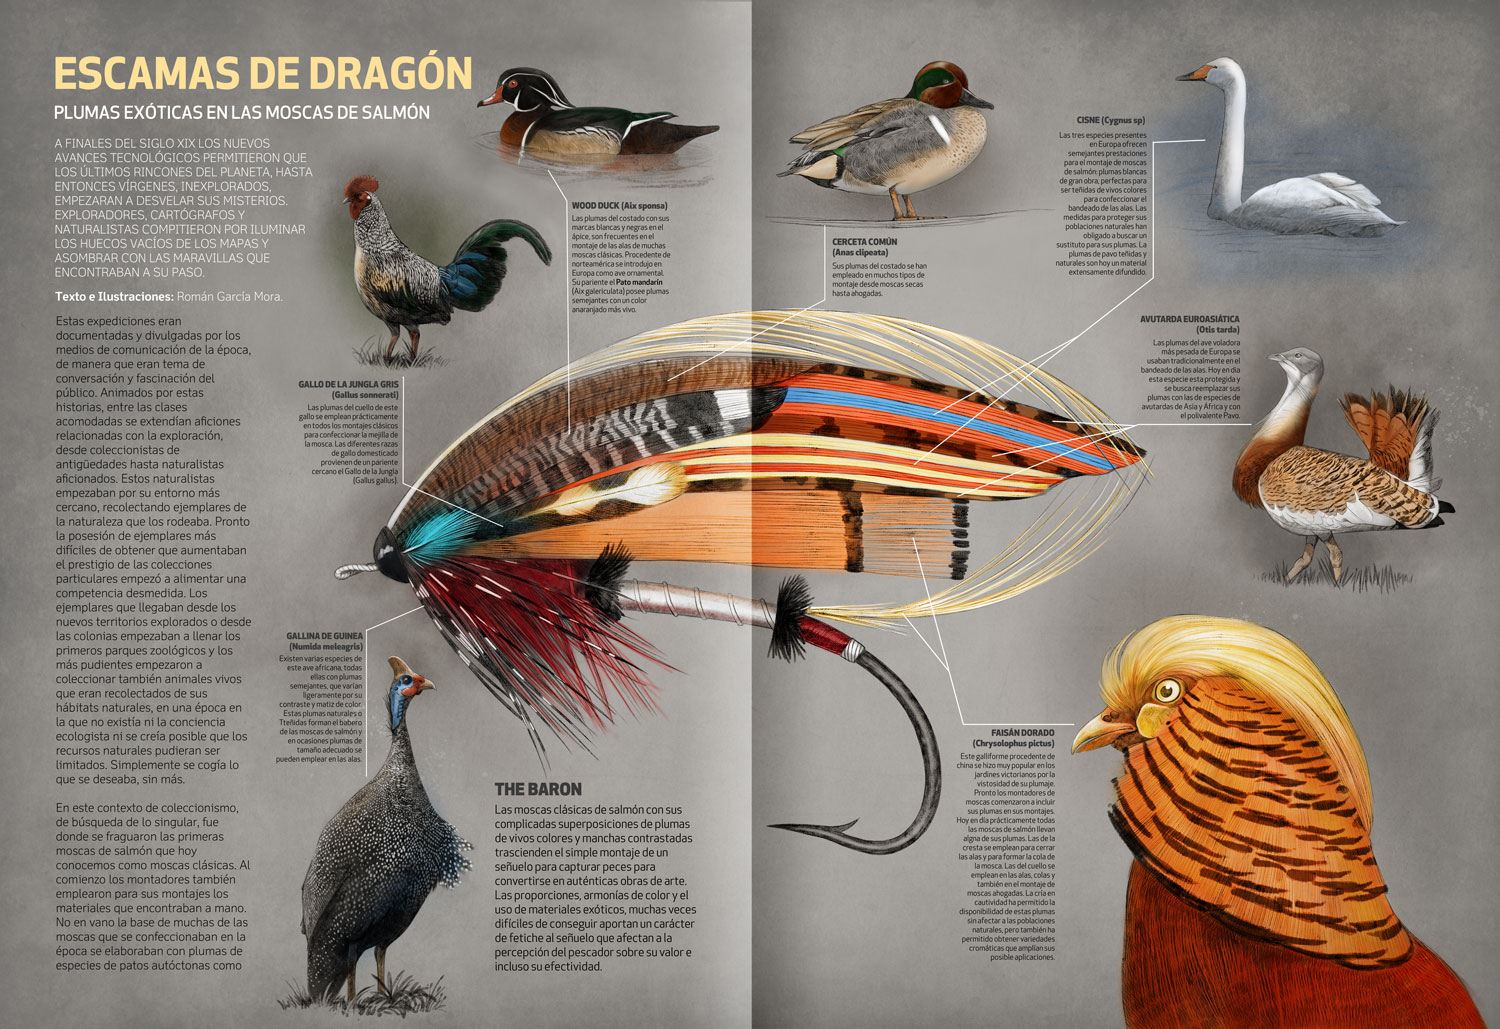 Fly Fishing Projects. Feathers for Salmon Fly Tying. Familiar species. Art by Román García Mora.